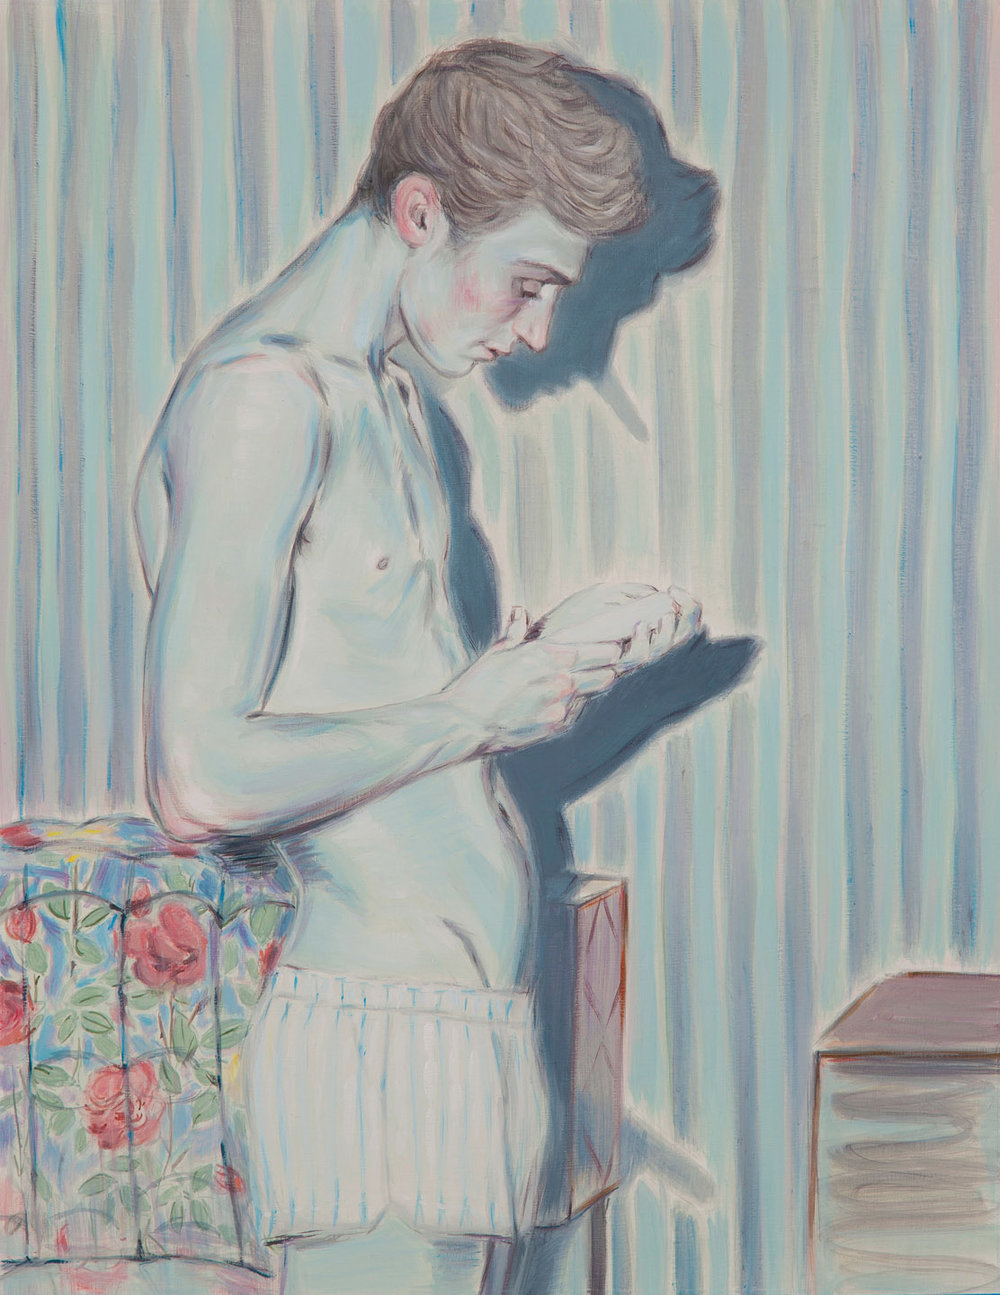 Kris Knight, The Shadow Of The Puer, 2015, oil on prepared cotton paper, 16 x 12 inches.